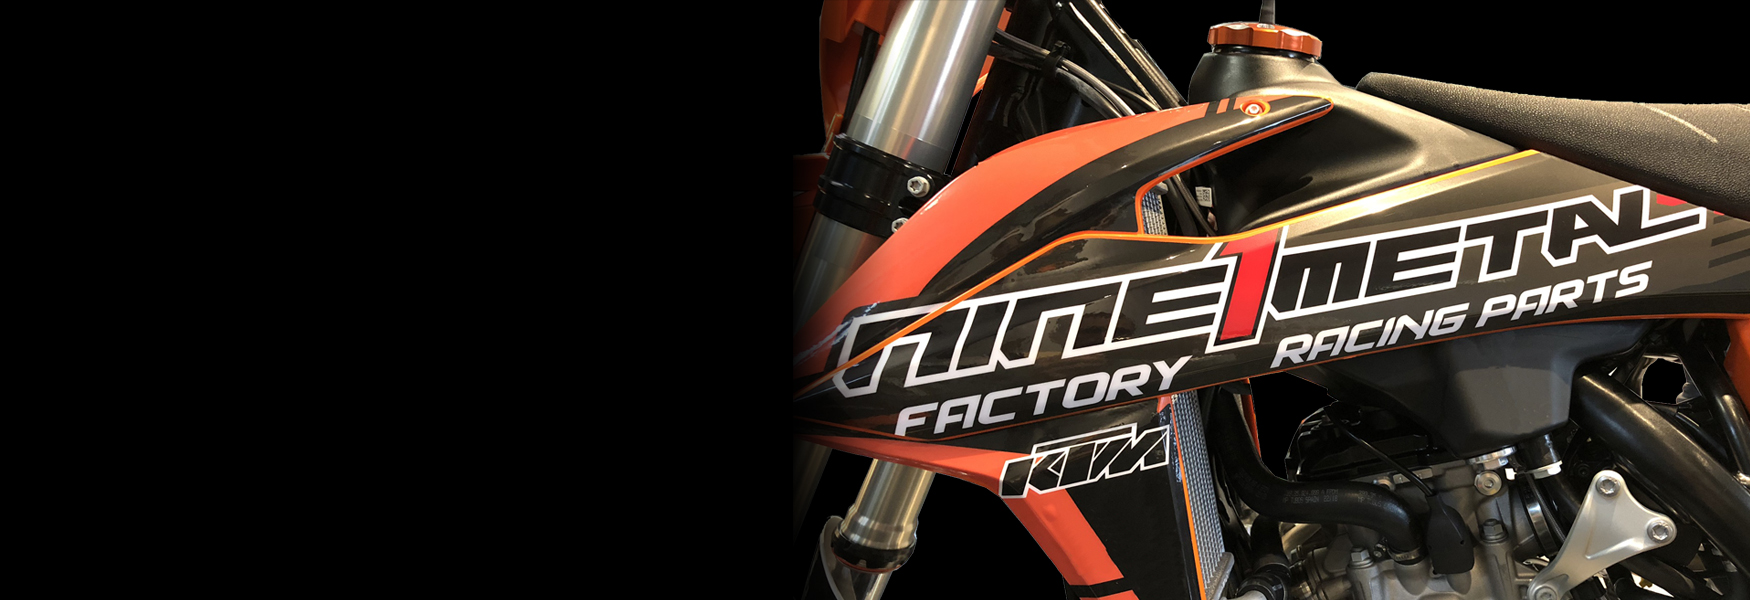 Nine1Metal Banner 2 Motocross KTM